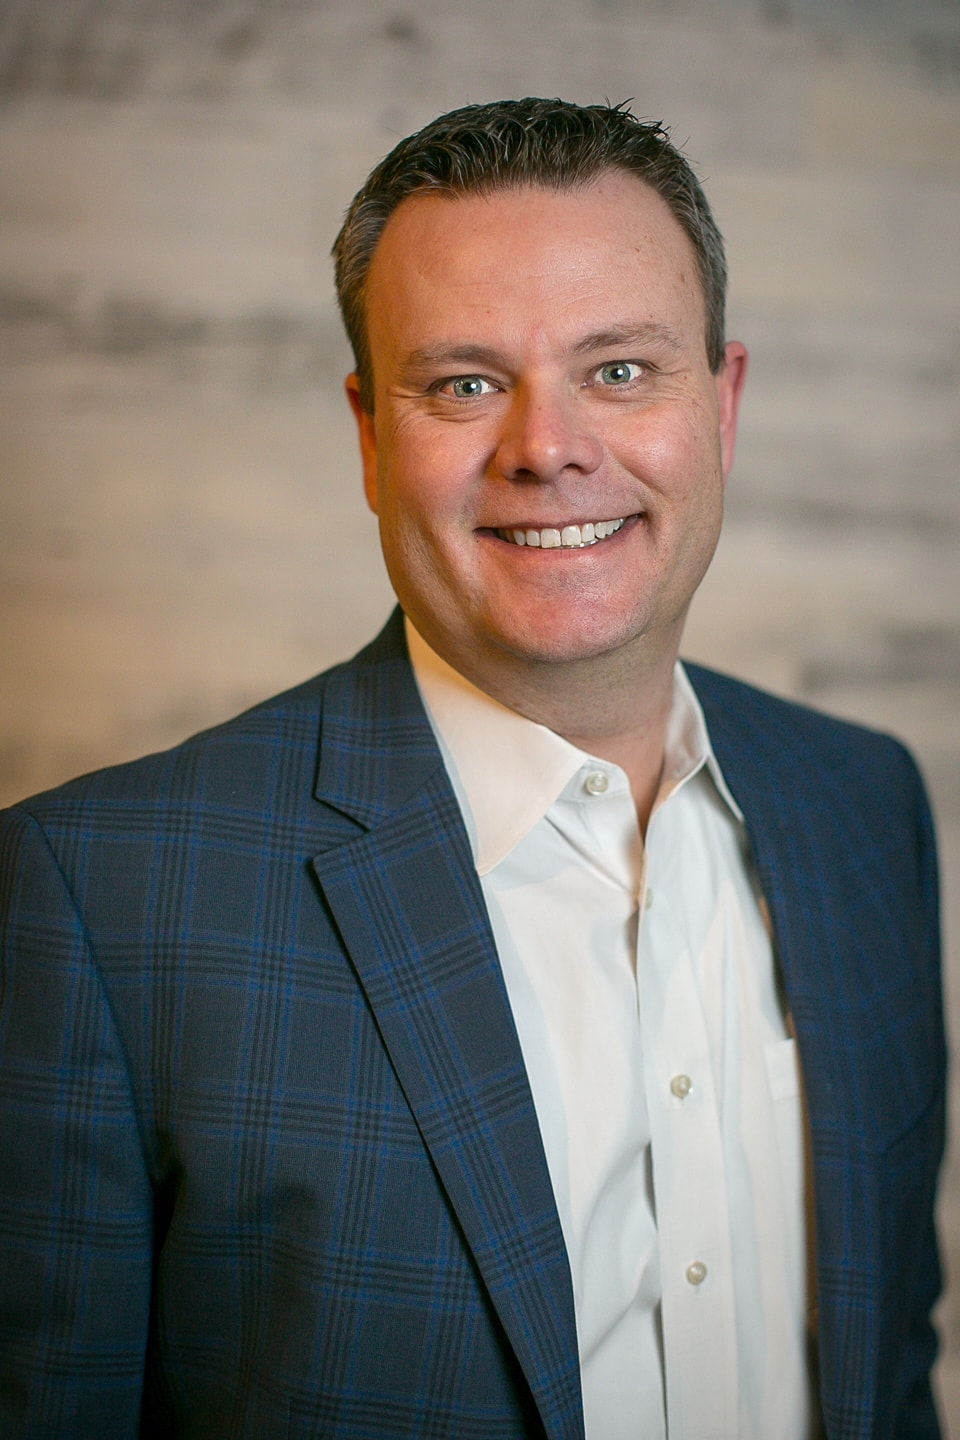 Ryan Erickson of Tandem Financial